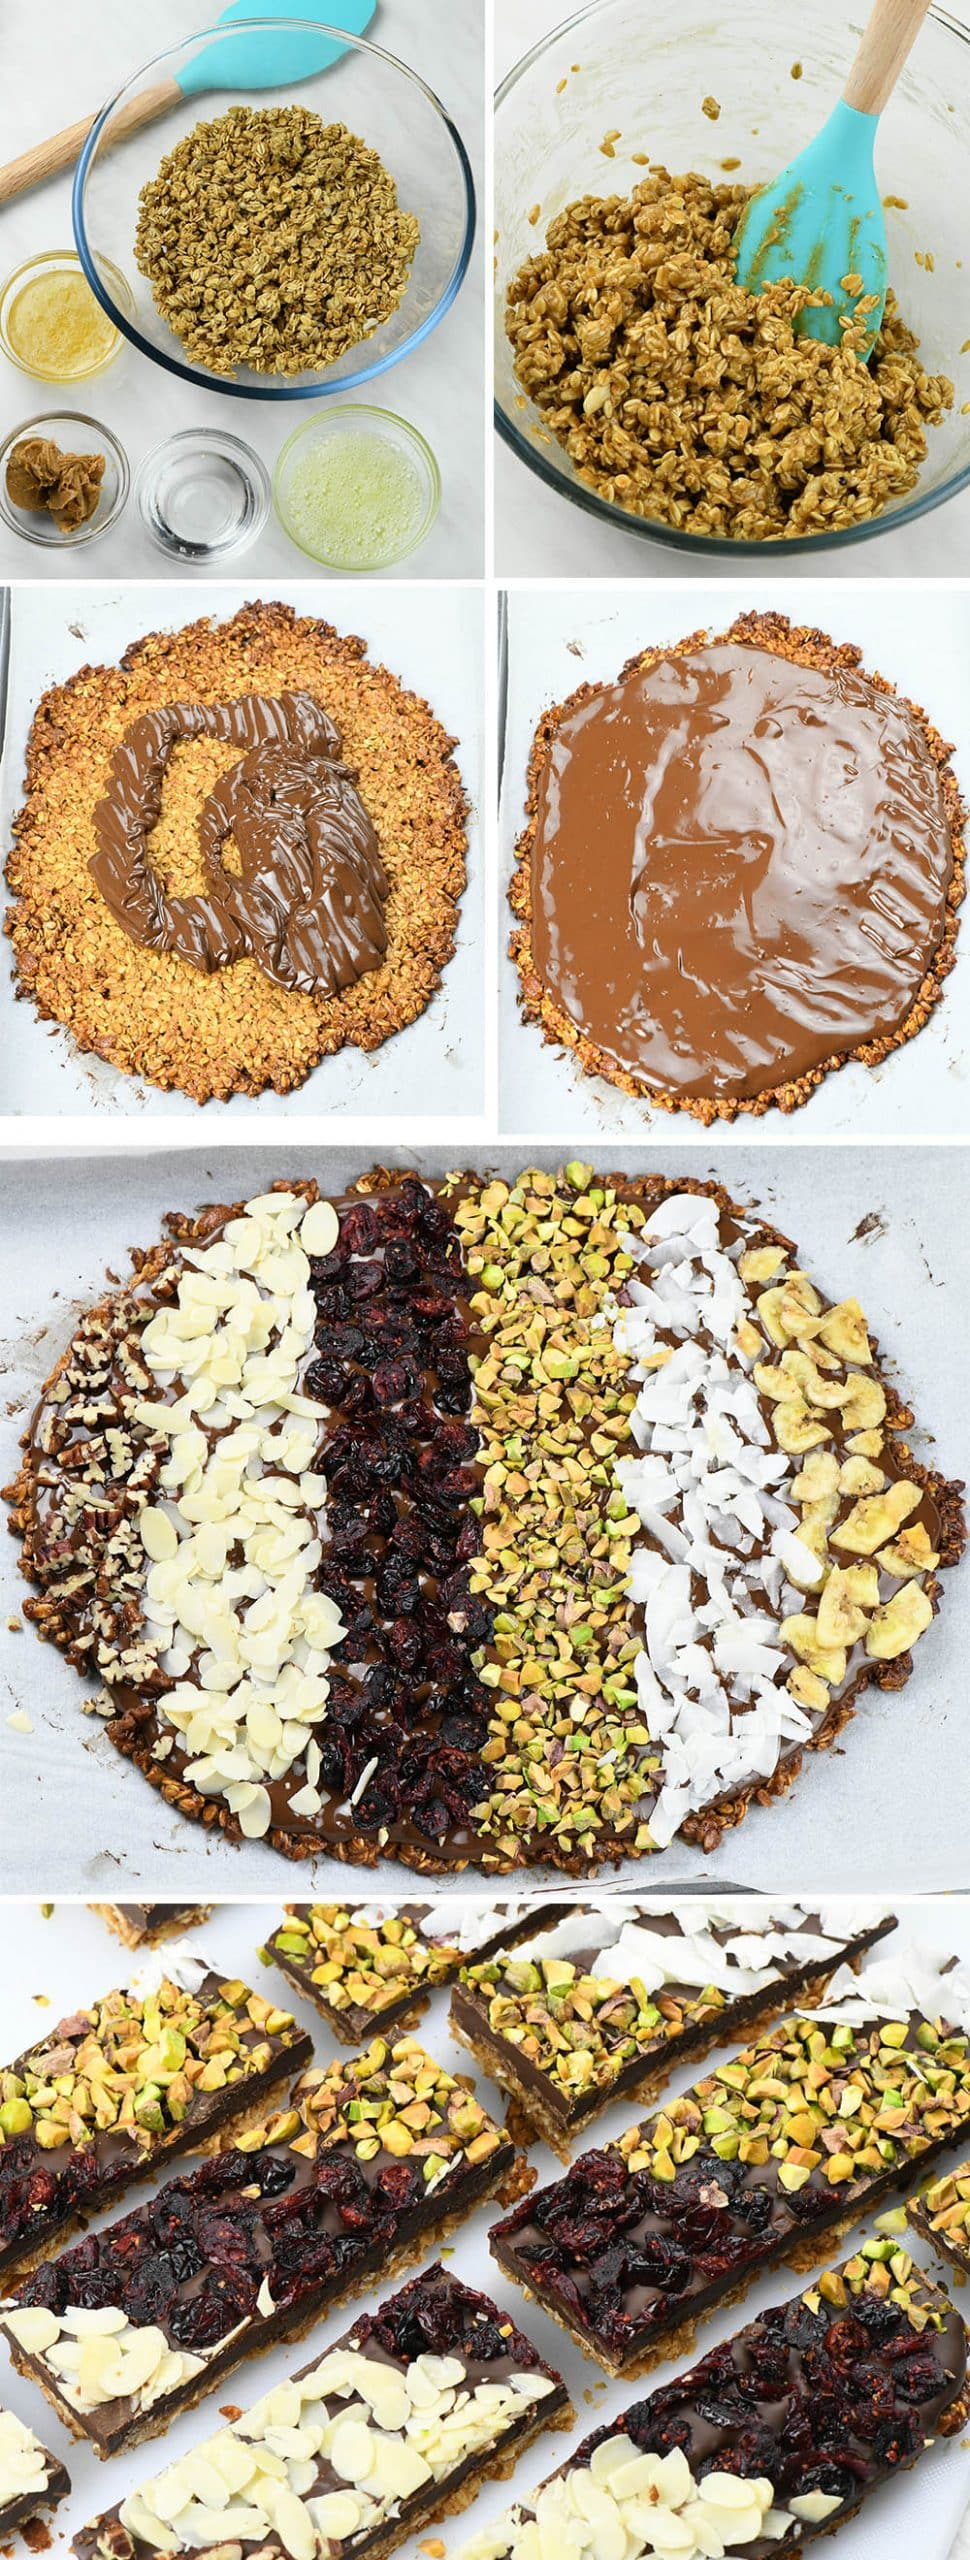 Chocolate Granora Bark (instructions)